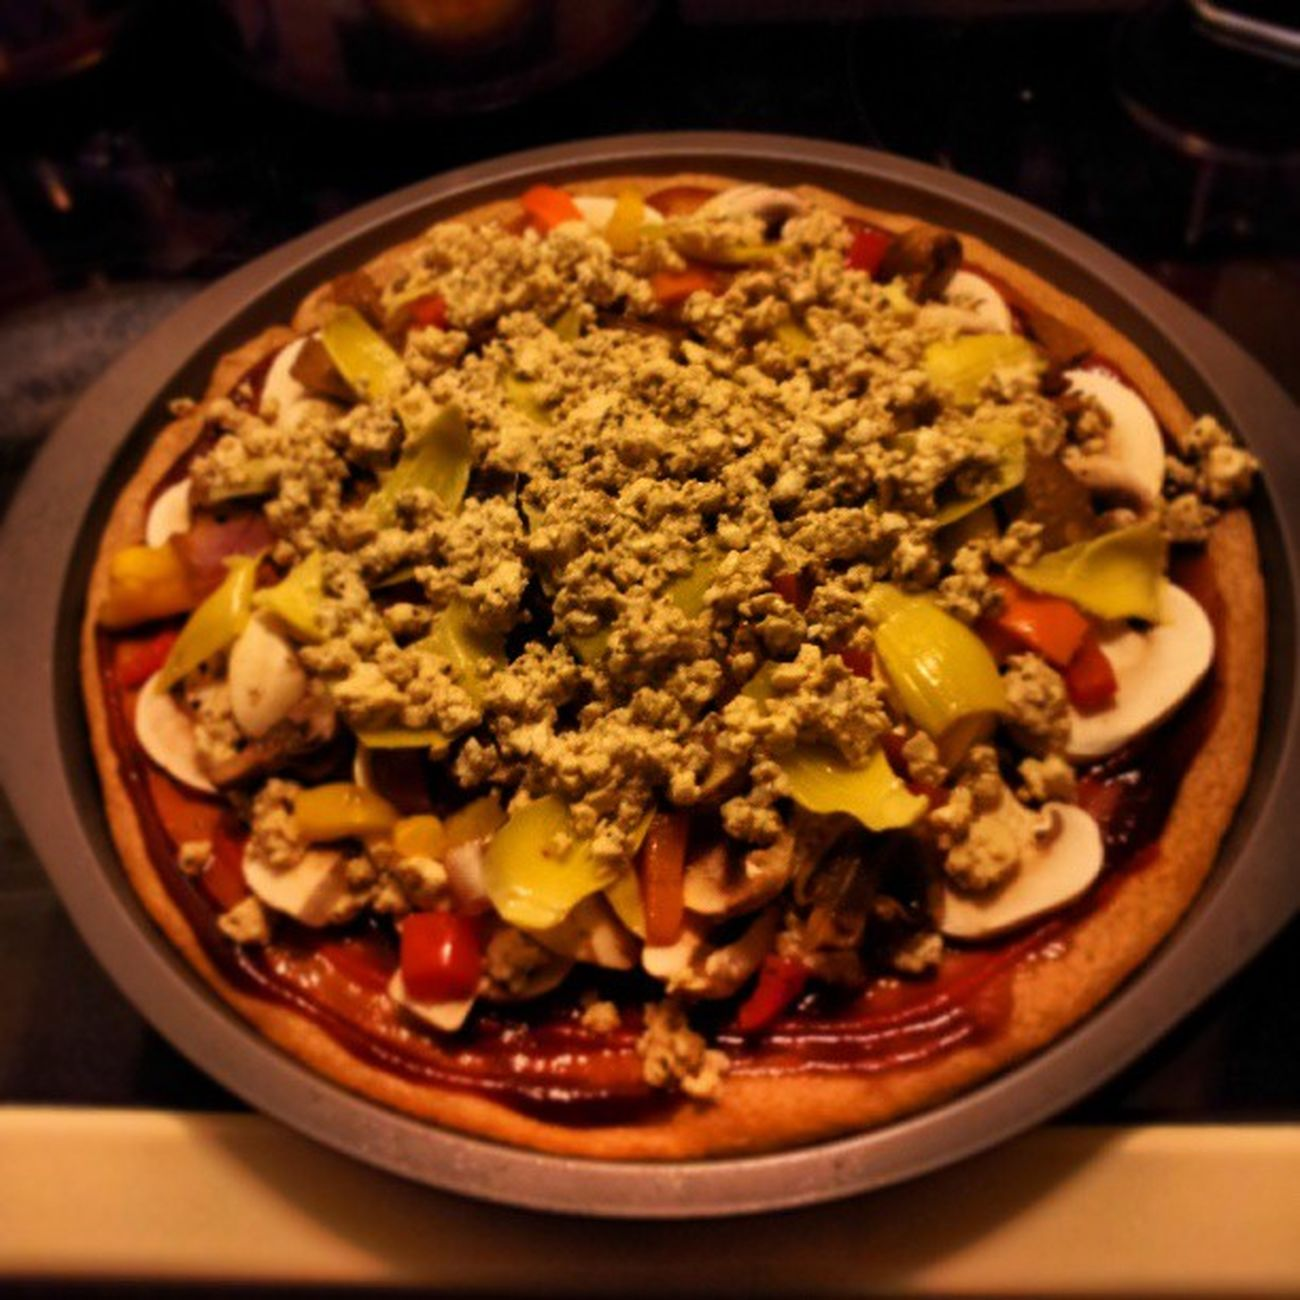 Delicious homemade Vegan pizza